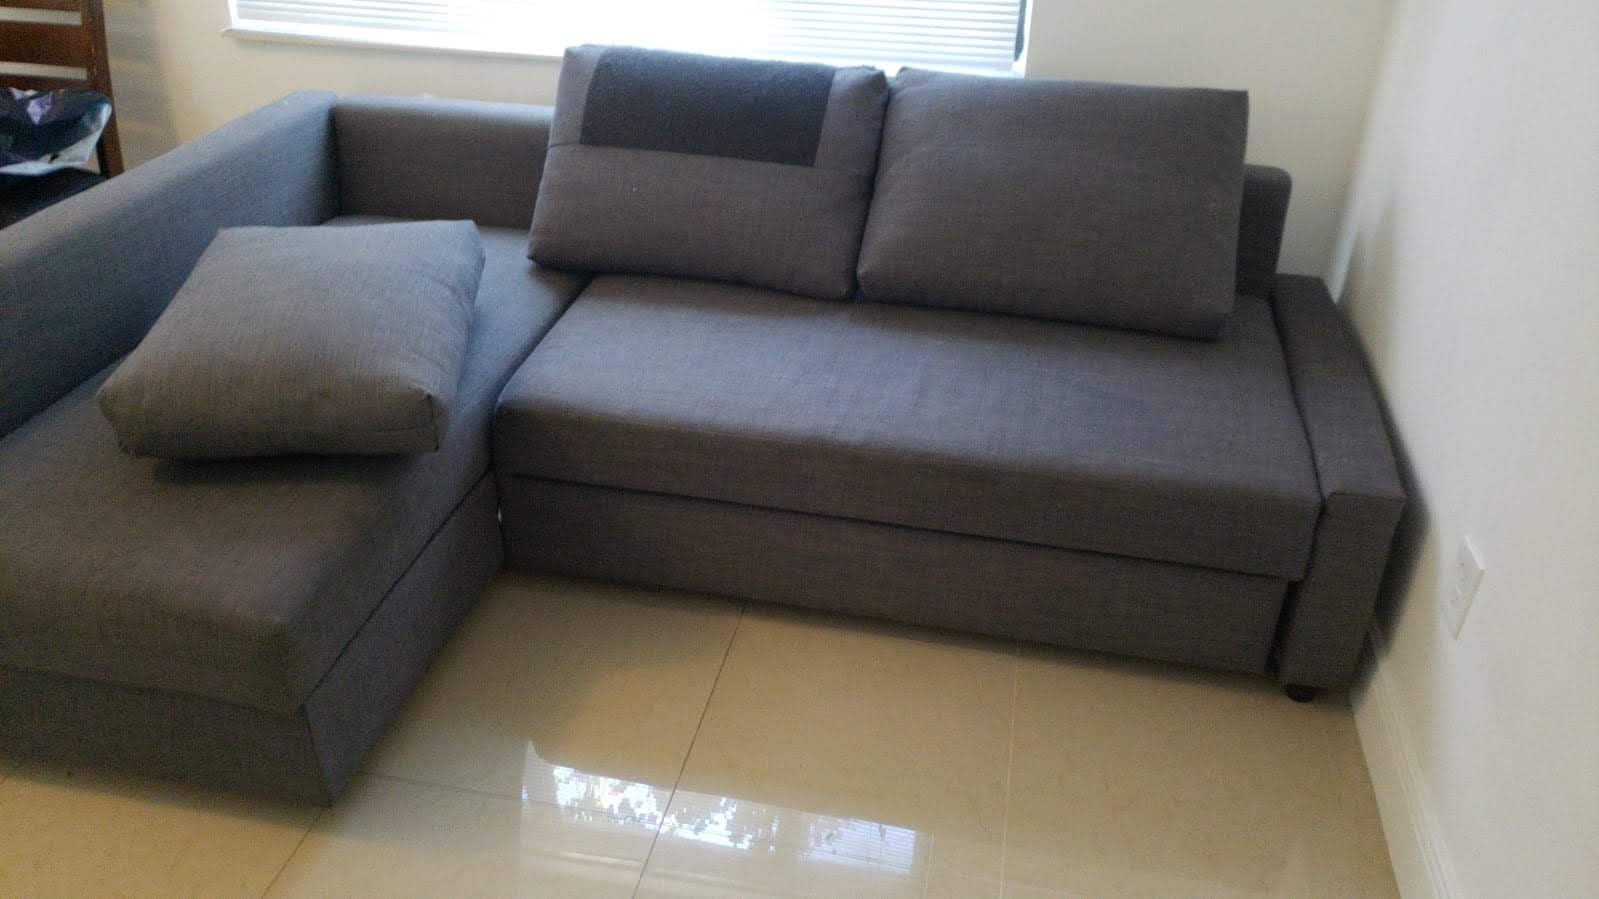 Upholstery Cleaning Miami FL  10 OFF Sofa Cleaning in Miami